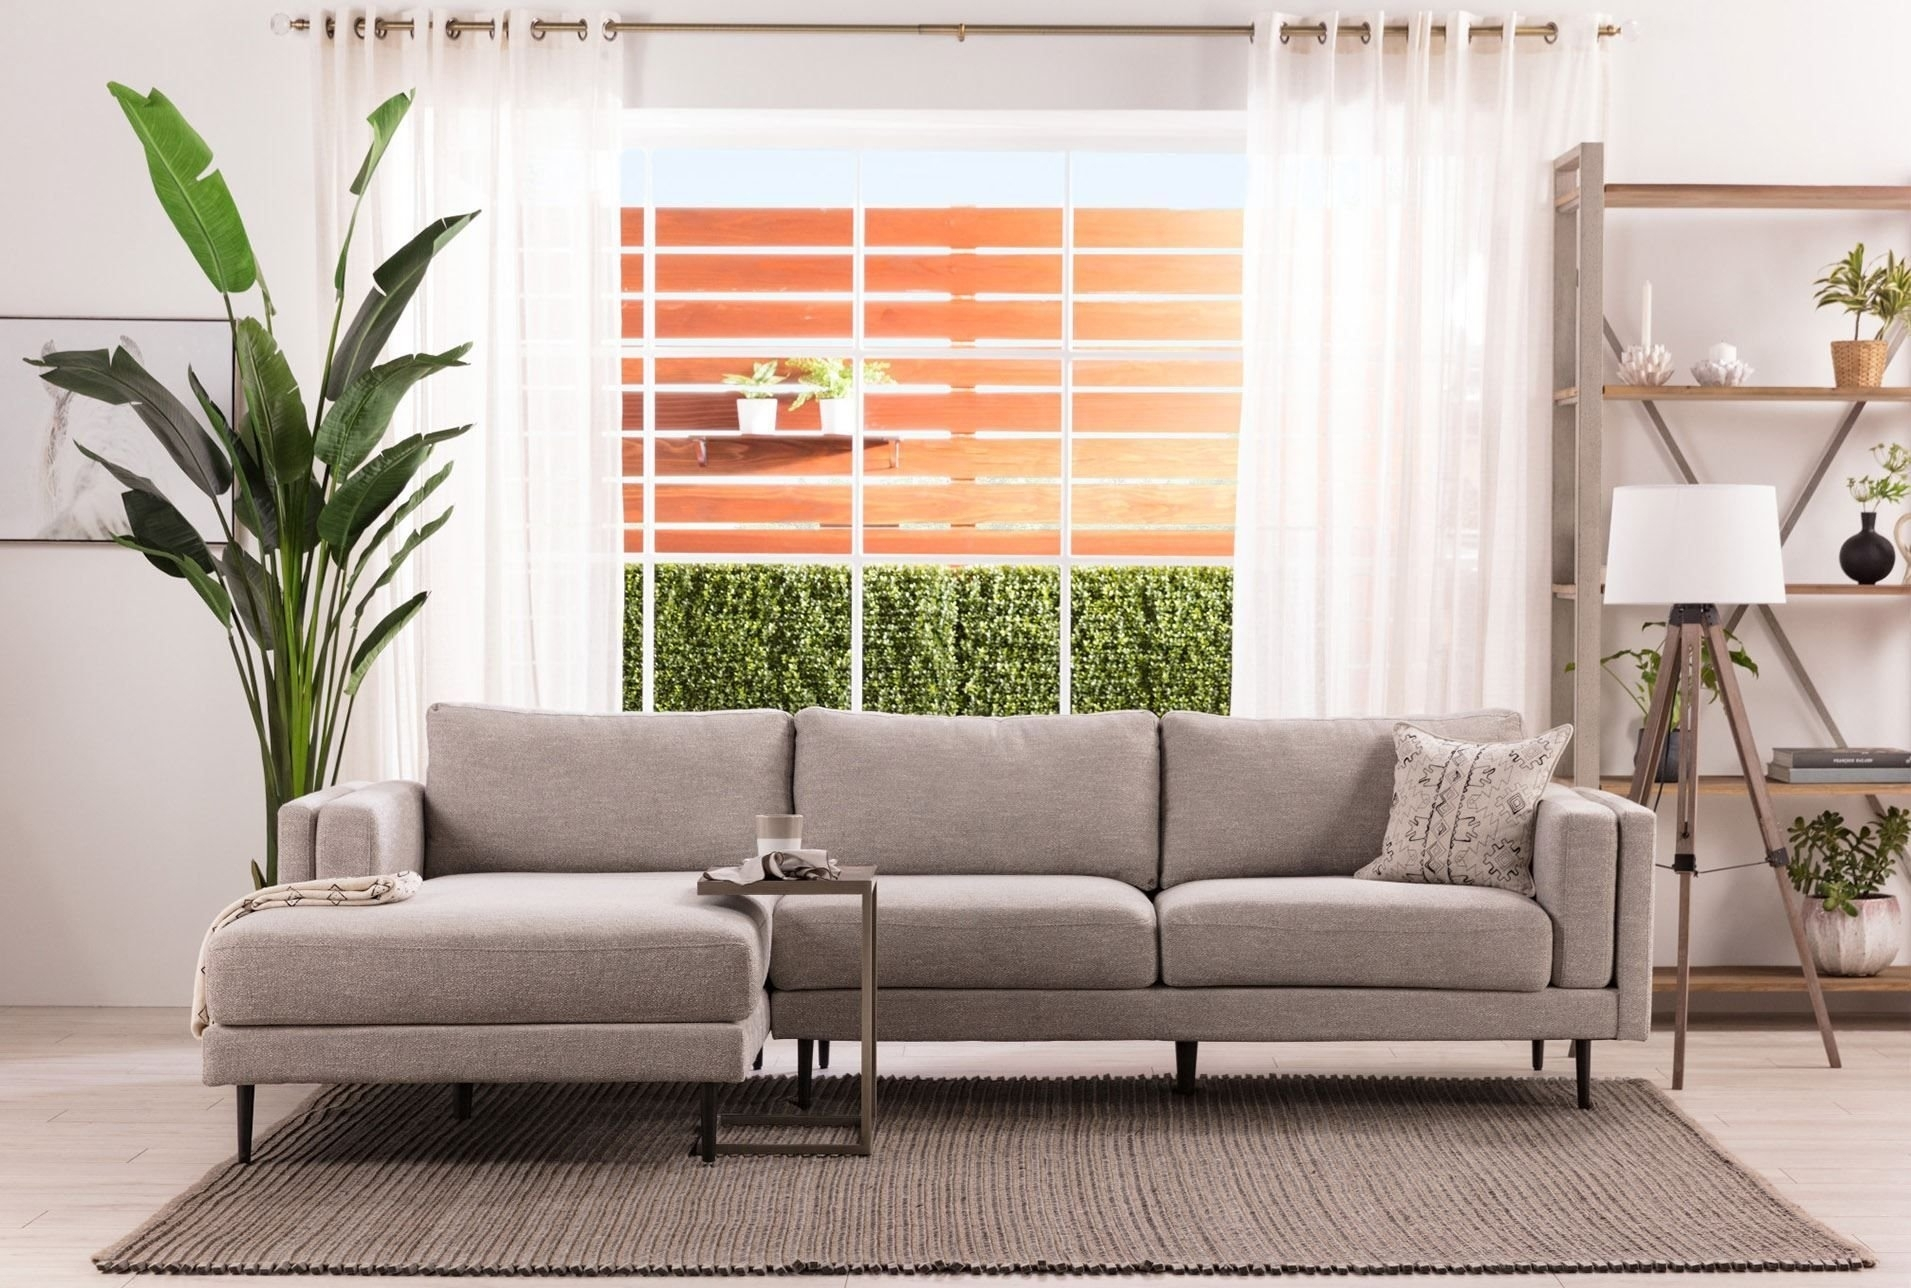 Simple 25 2 Piece Sectionals With Chaise Awesome | Russiandesignshow Throughout Cosmos Grey 2 Piece Sectionals With Laf Chaise (Image 21 of 25)